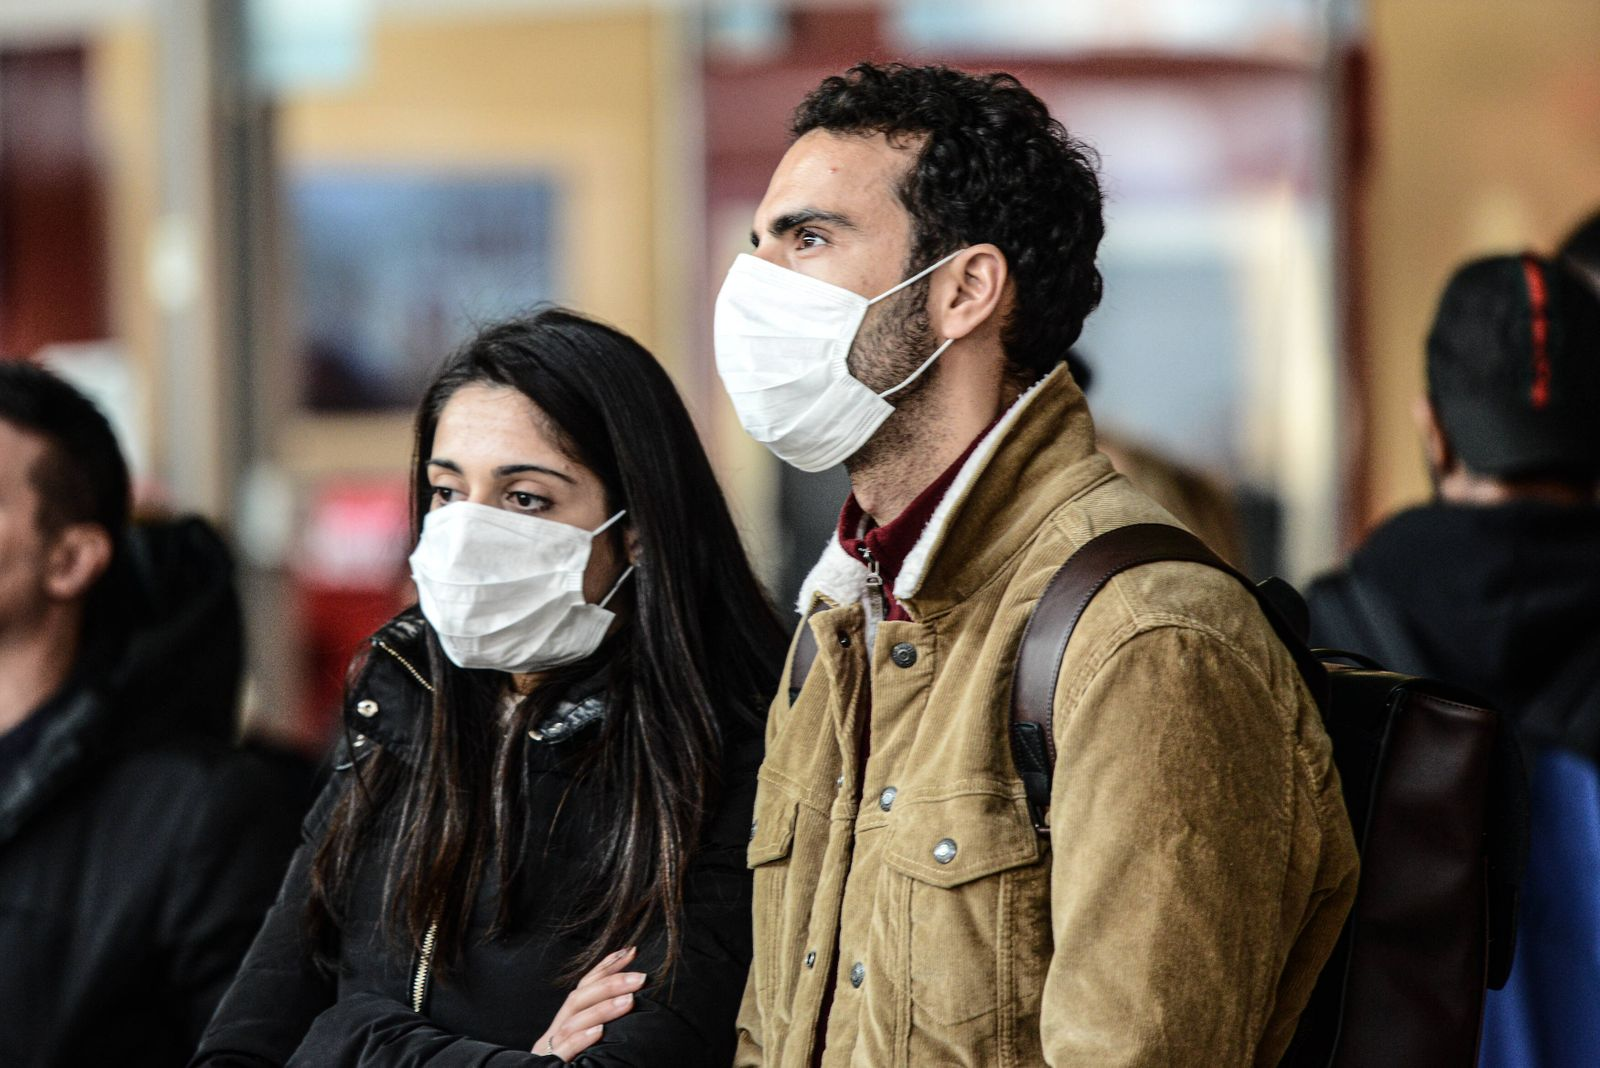 Italy: Psychosis Coronavirus in Turin Psychosis Coronavirus in Turin, a man wears a health mask in Turin, Piazza Castel